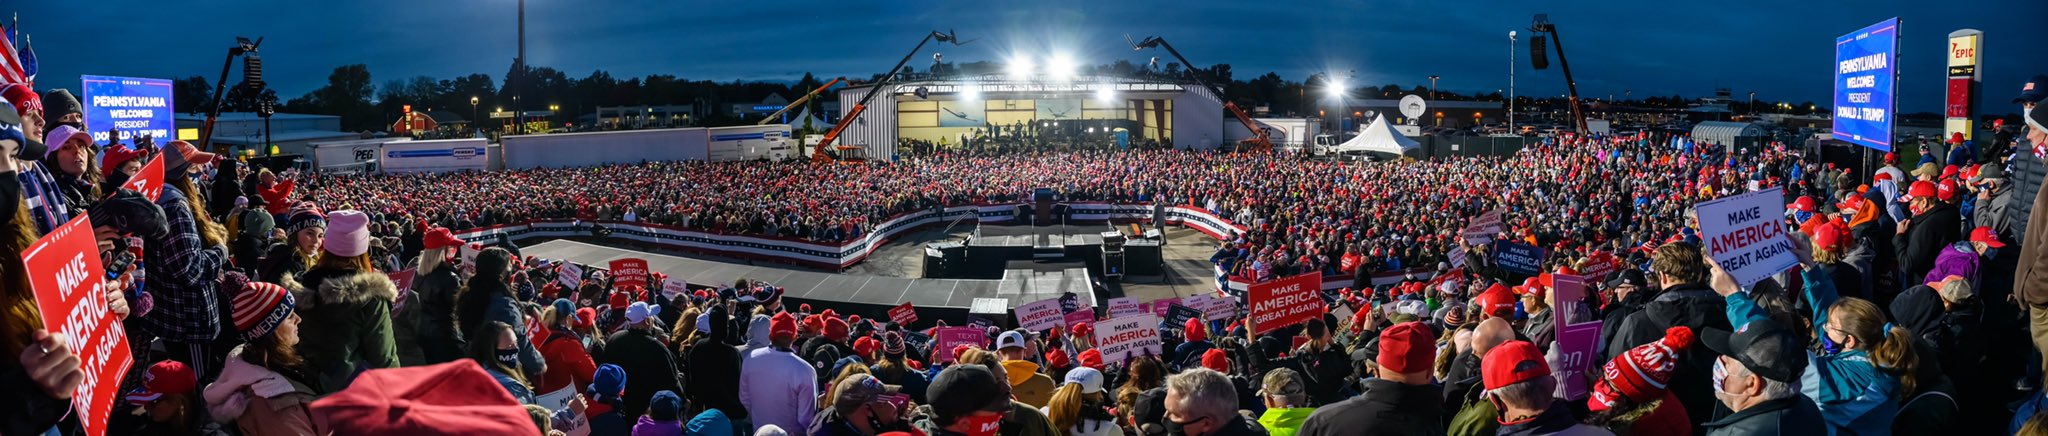 A Photo Local Erie Media Don't Want You To See – Erie County is Trump Country